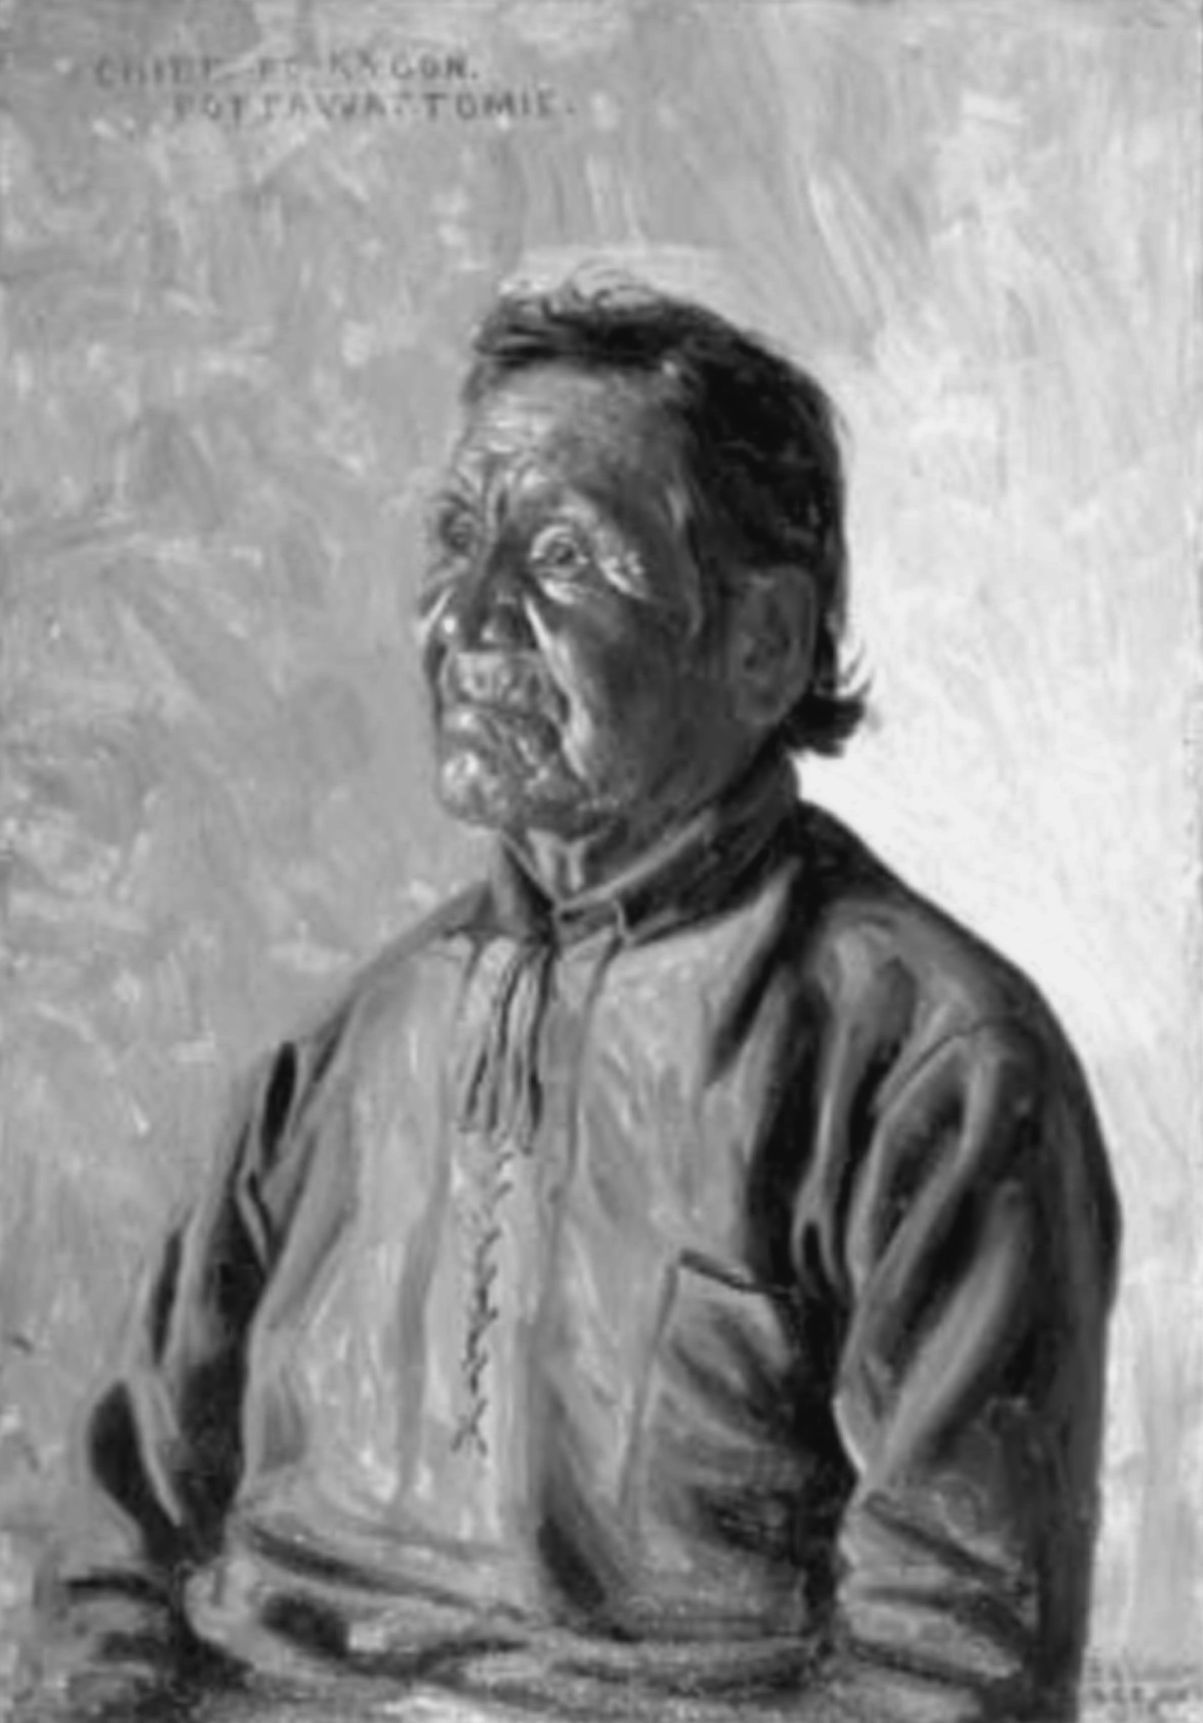 Portrait of Simon Pokagon from nwitimes.com